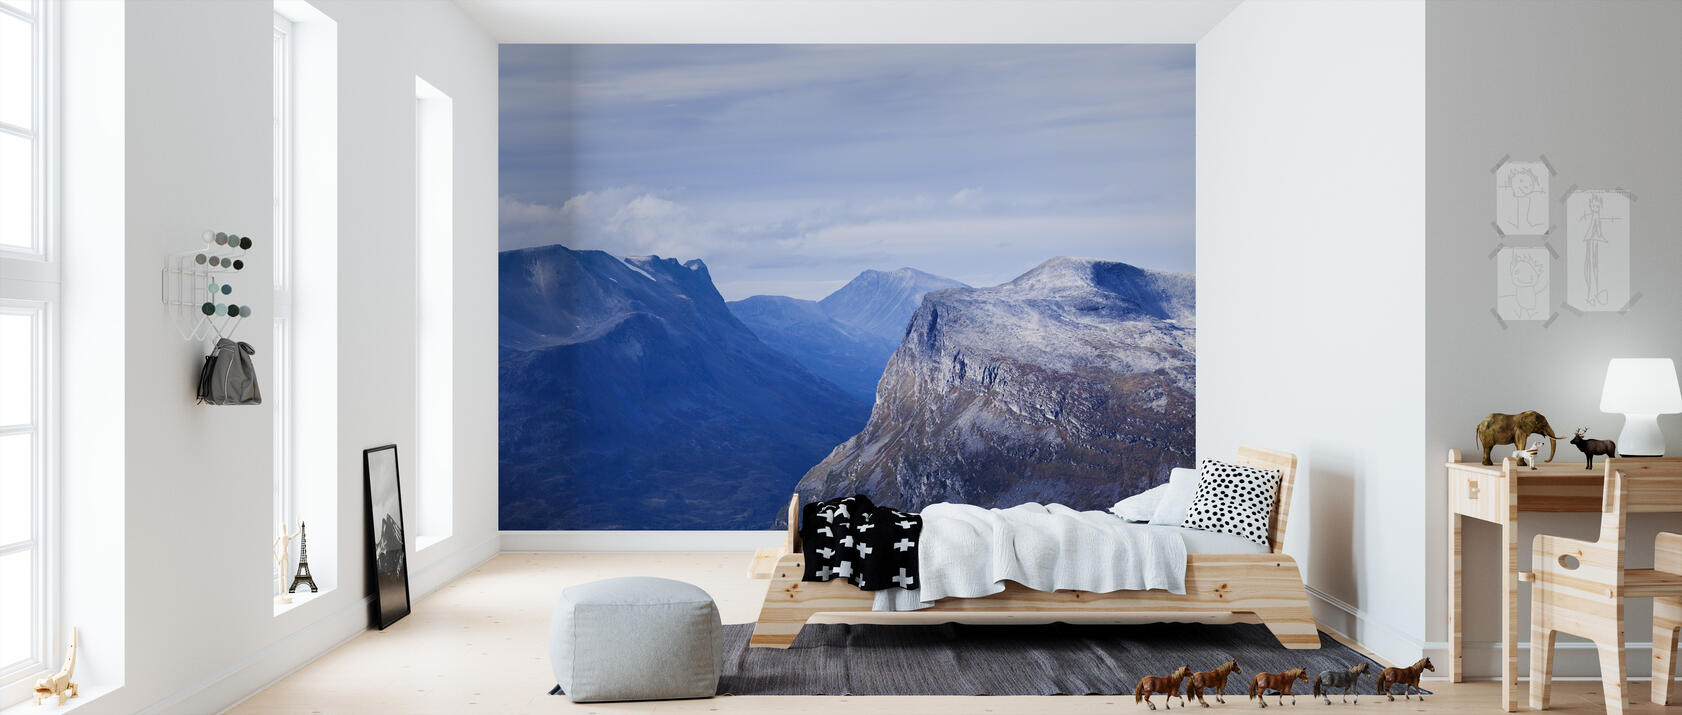 dalsnibba norway fototapete nach ma photowall. Black Bedroom Furniture Sets. Home Design Ideas